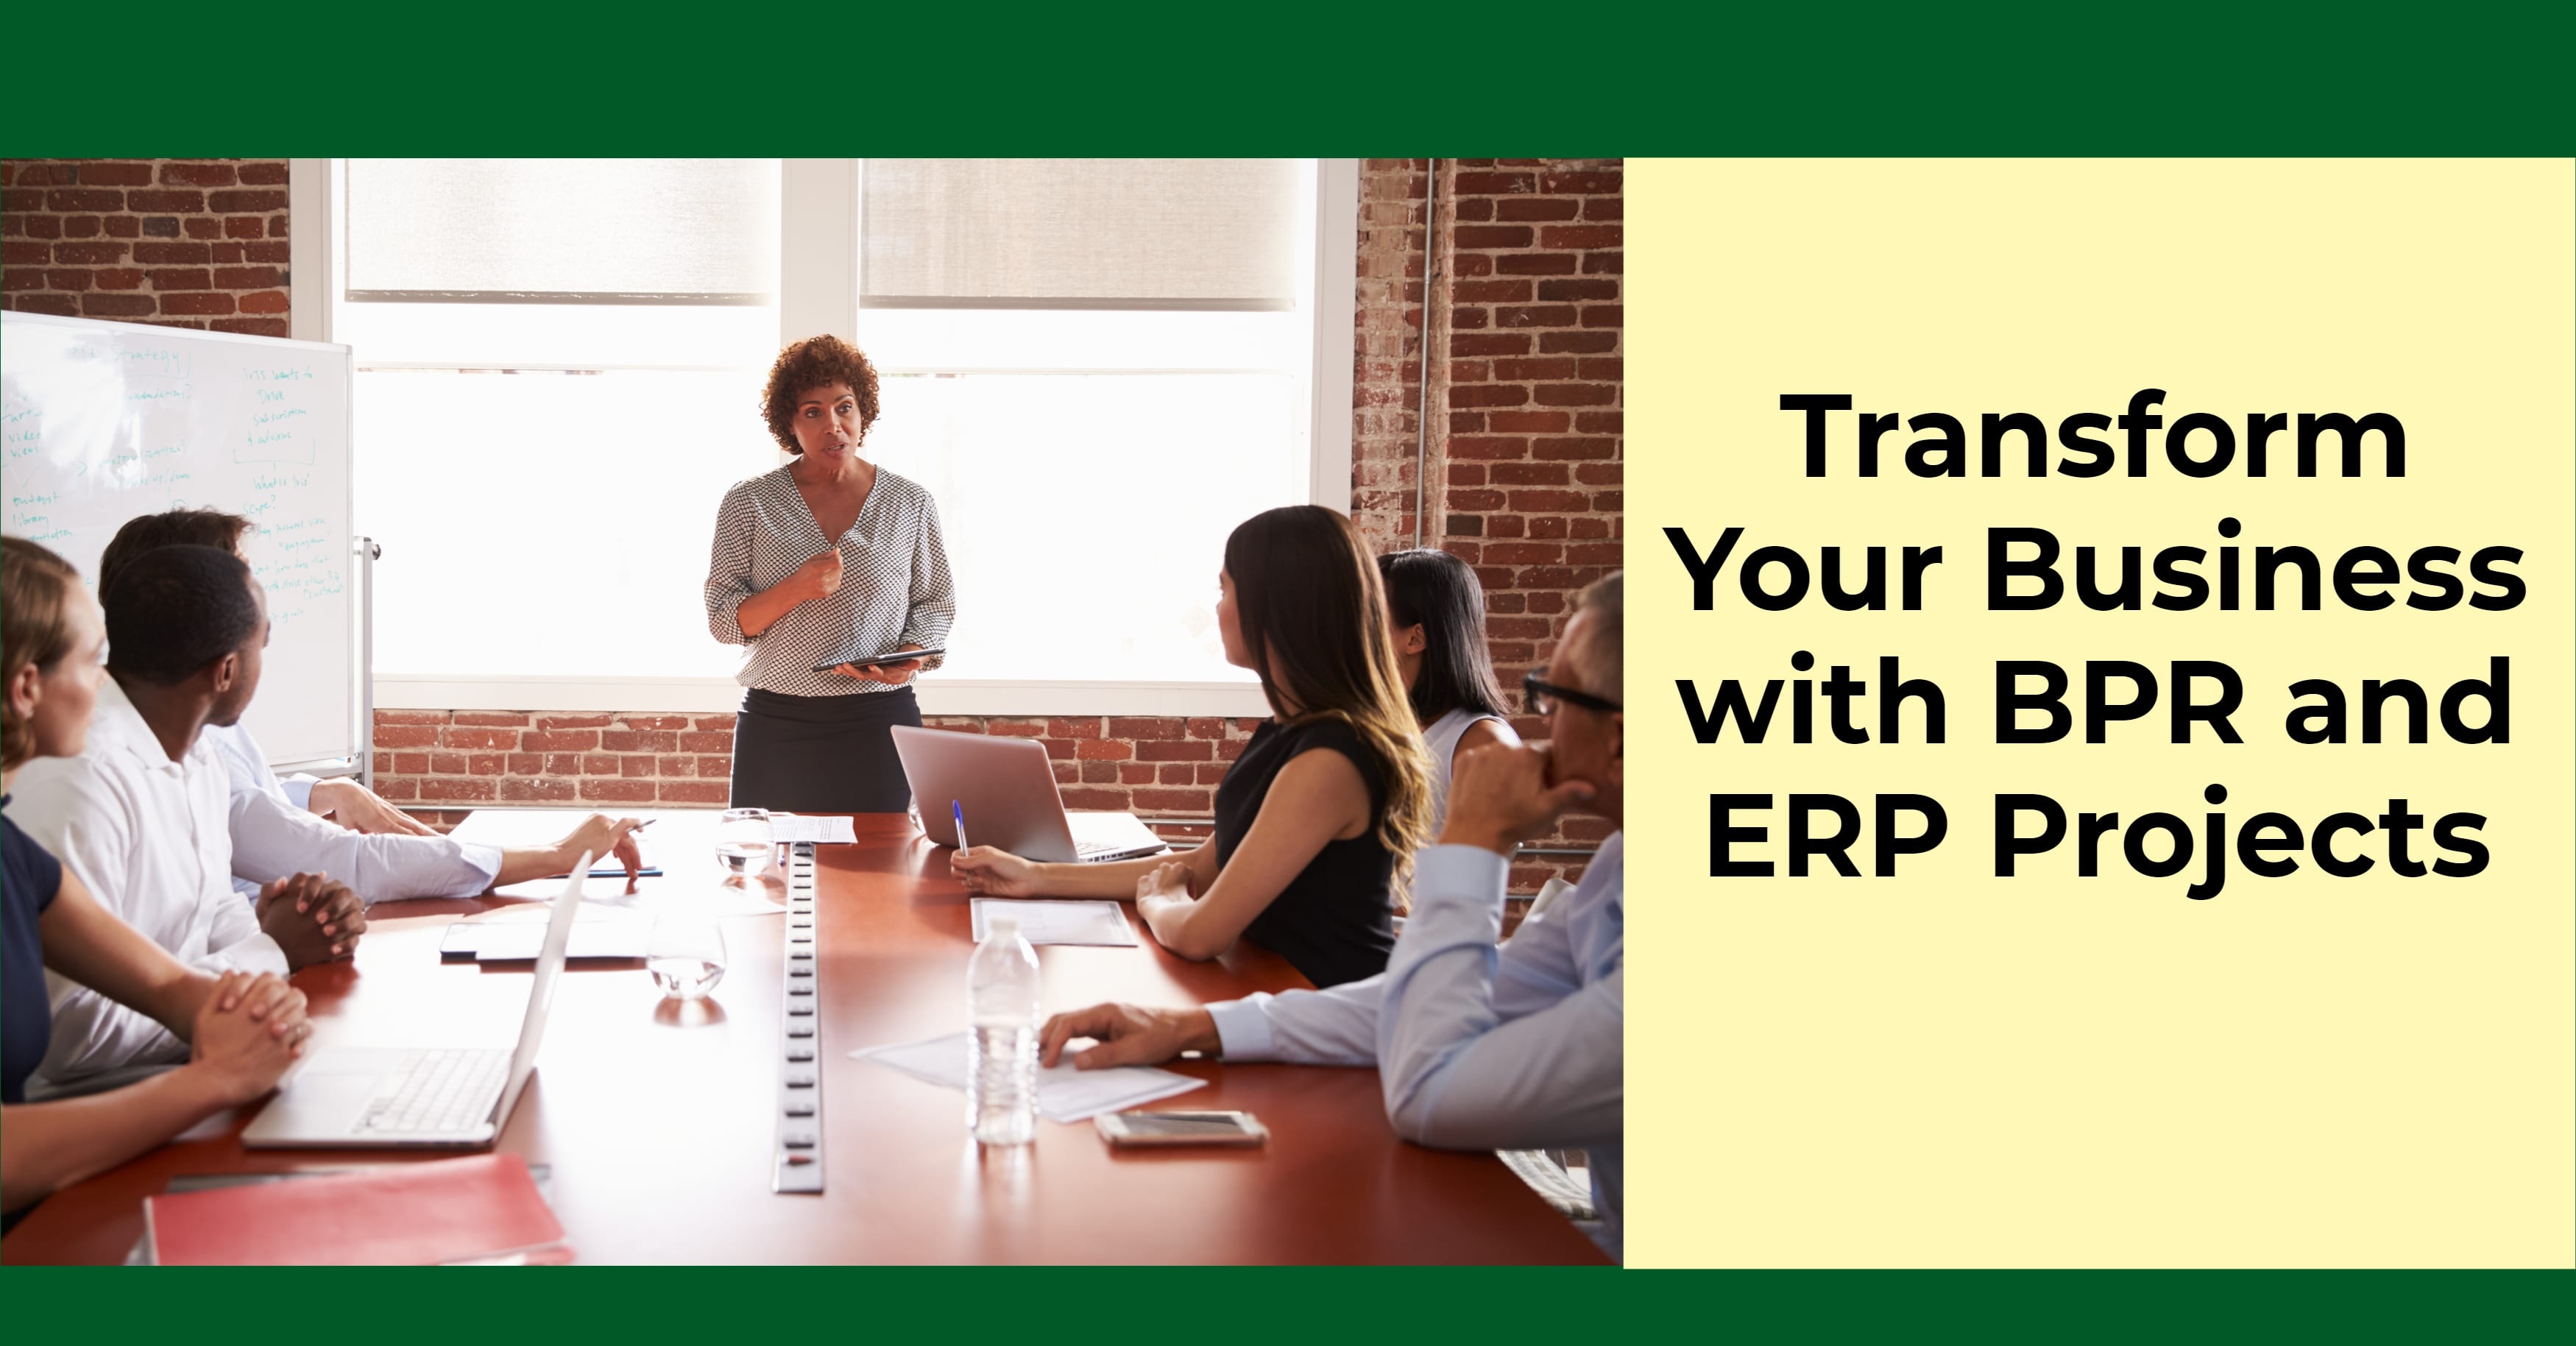 BPR and ERP